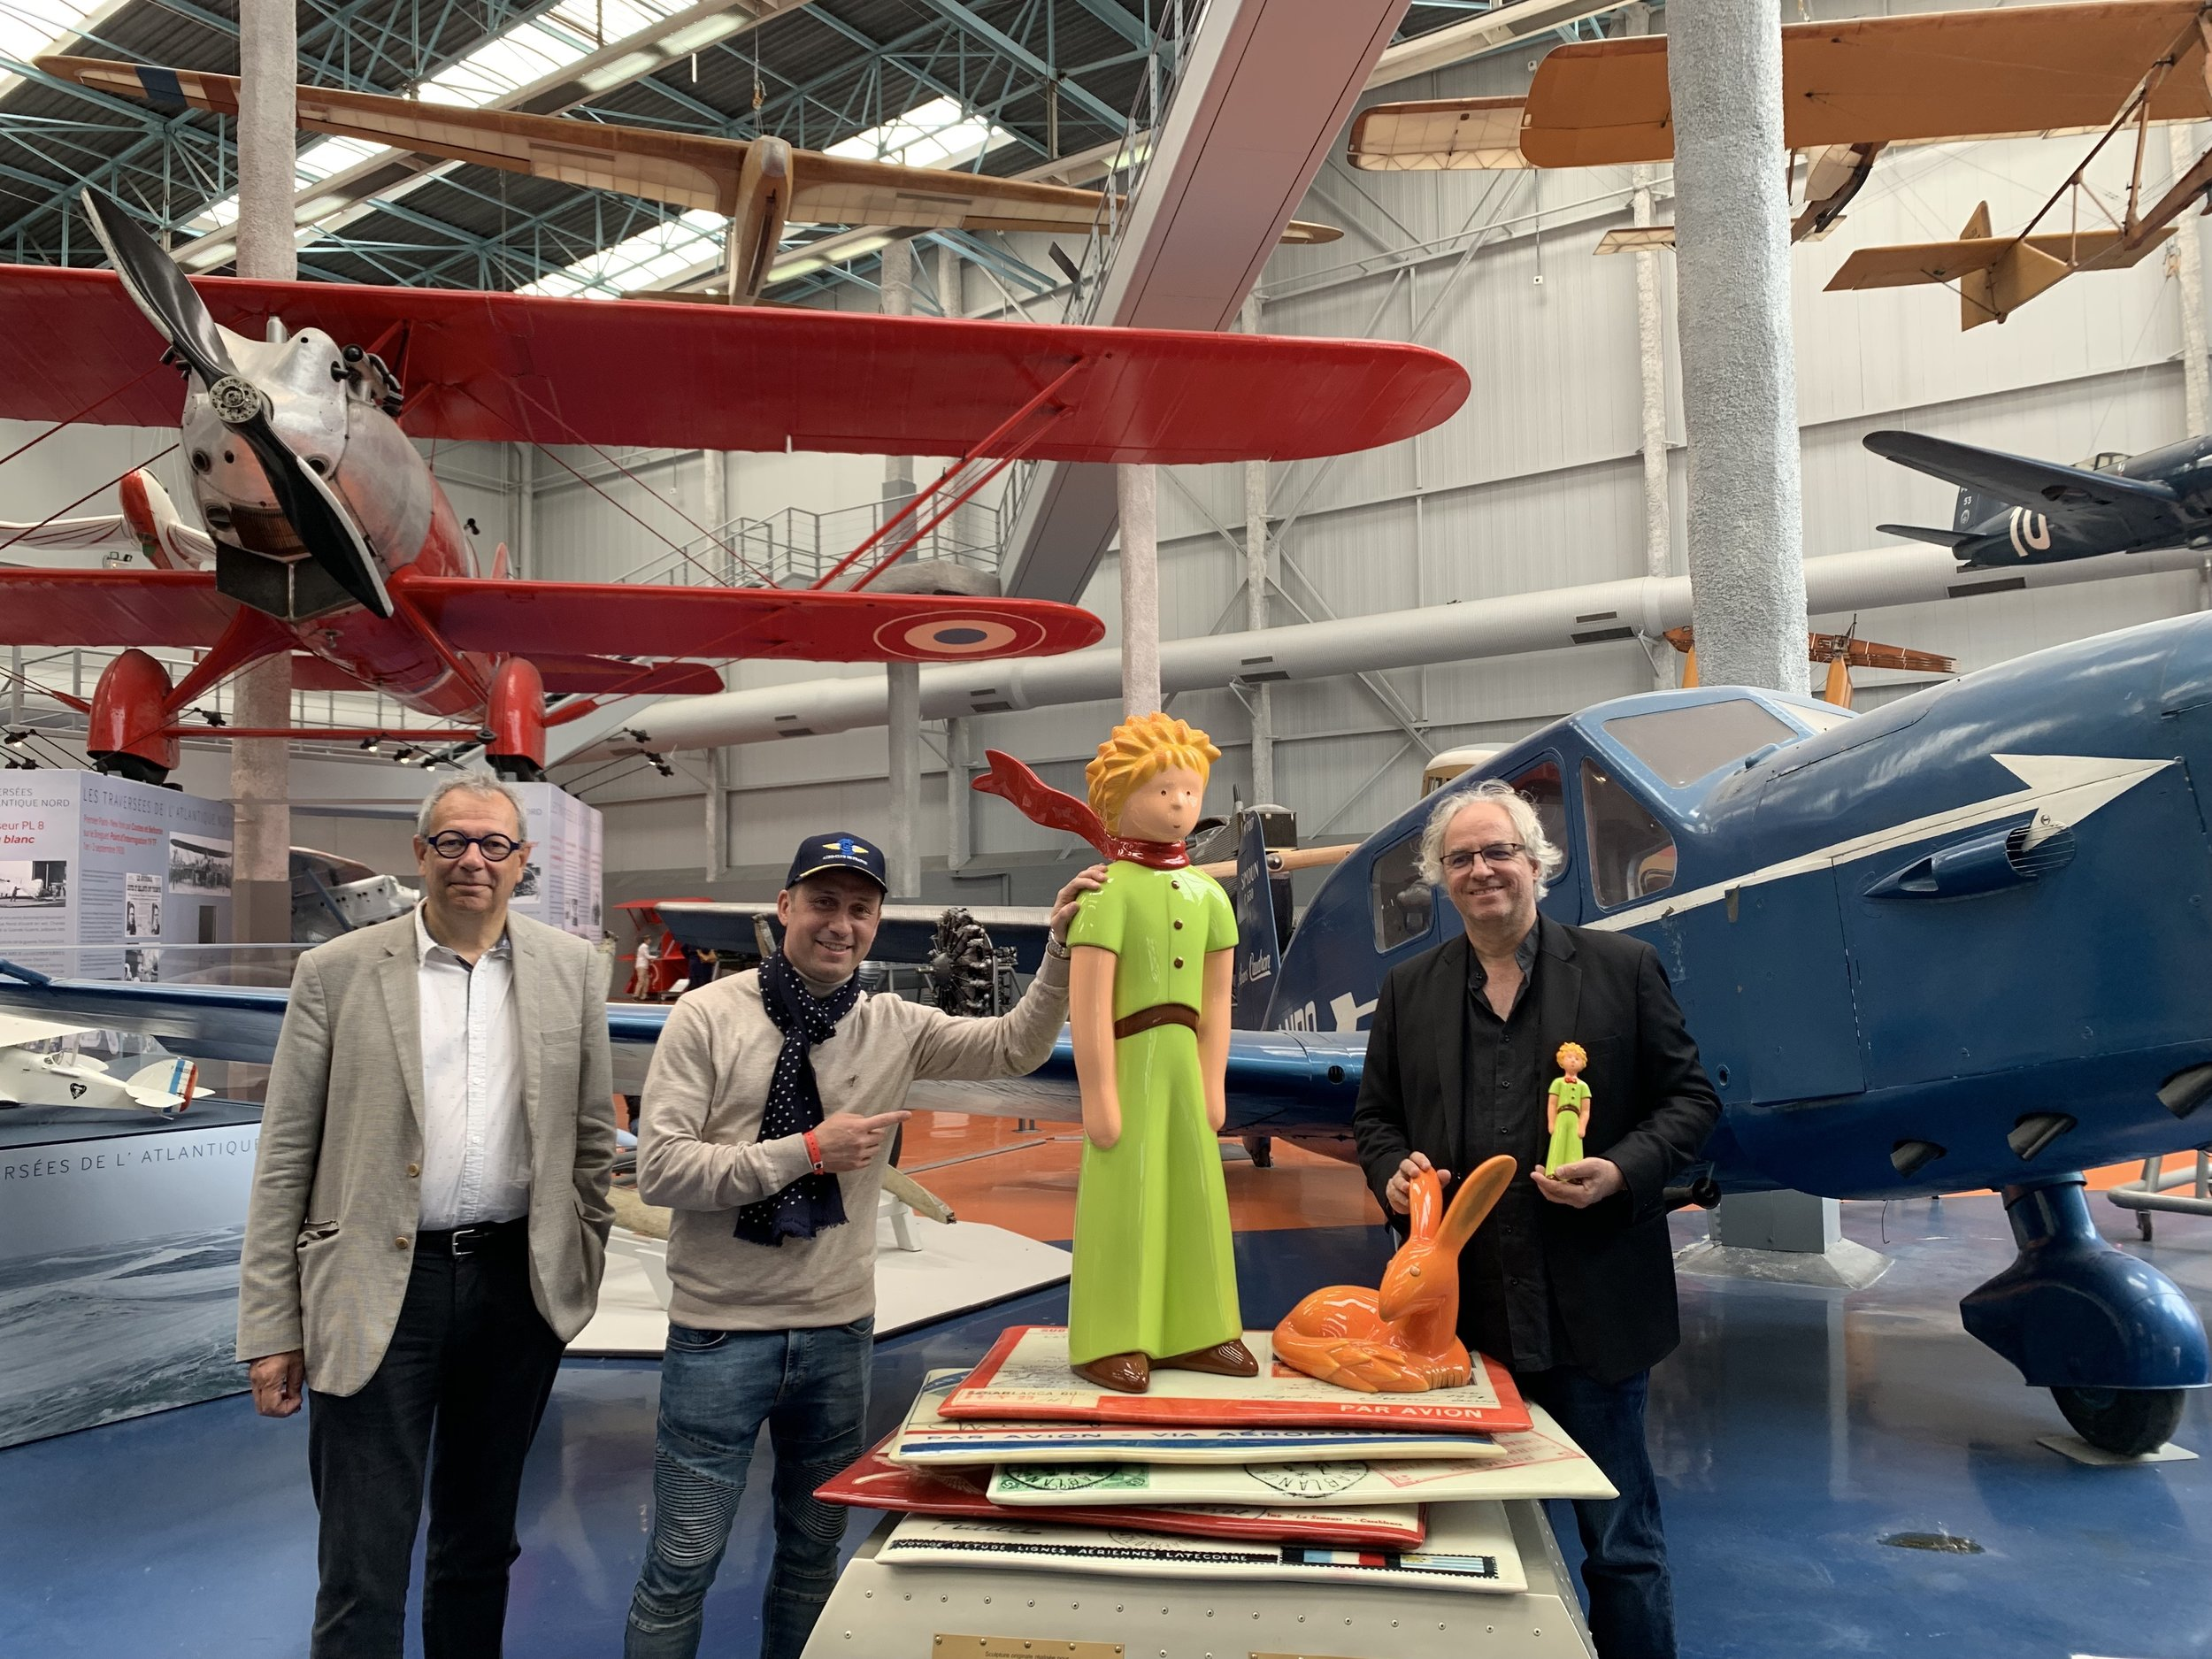 Jean Baptiste Desbois, CEO of La Cité de l'Espace and the new museum in Toulouse (France), l'Envol des Pionniers, Nicolas Delsalle, General Secretary of the FASEJ and Arnaud Nazare-Aga and The Little Prince.